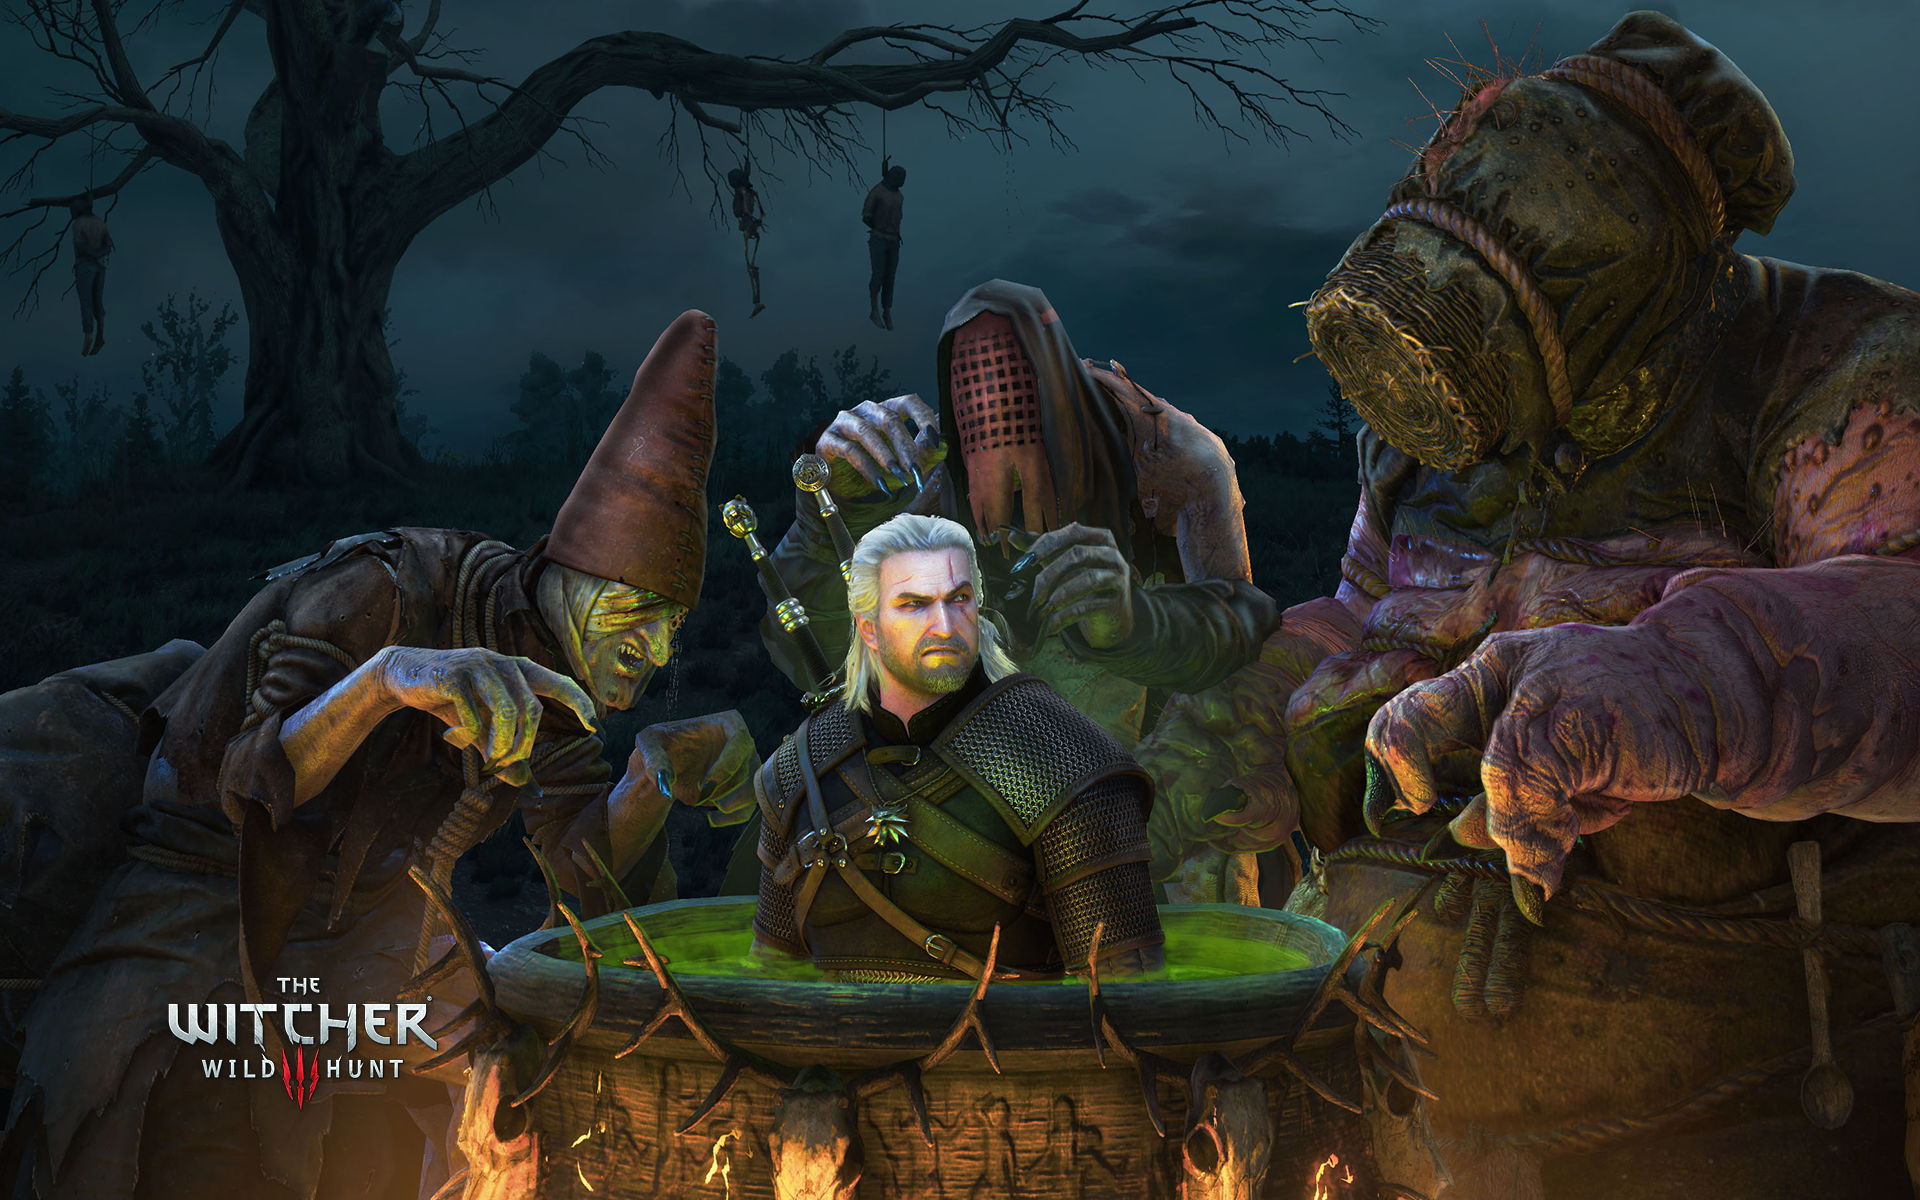 The witcher 3 wild hunt official website solutioingenieria Image collections